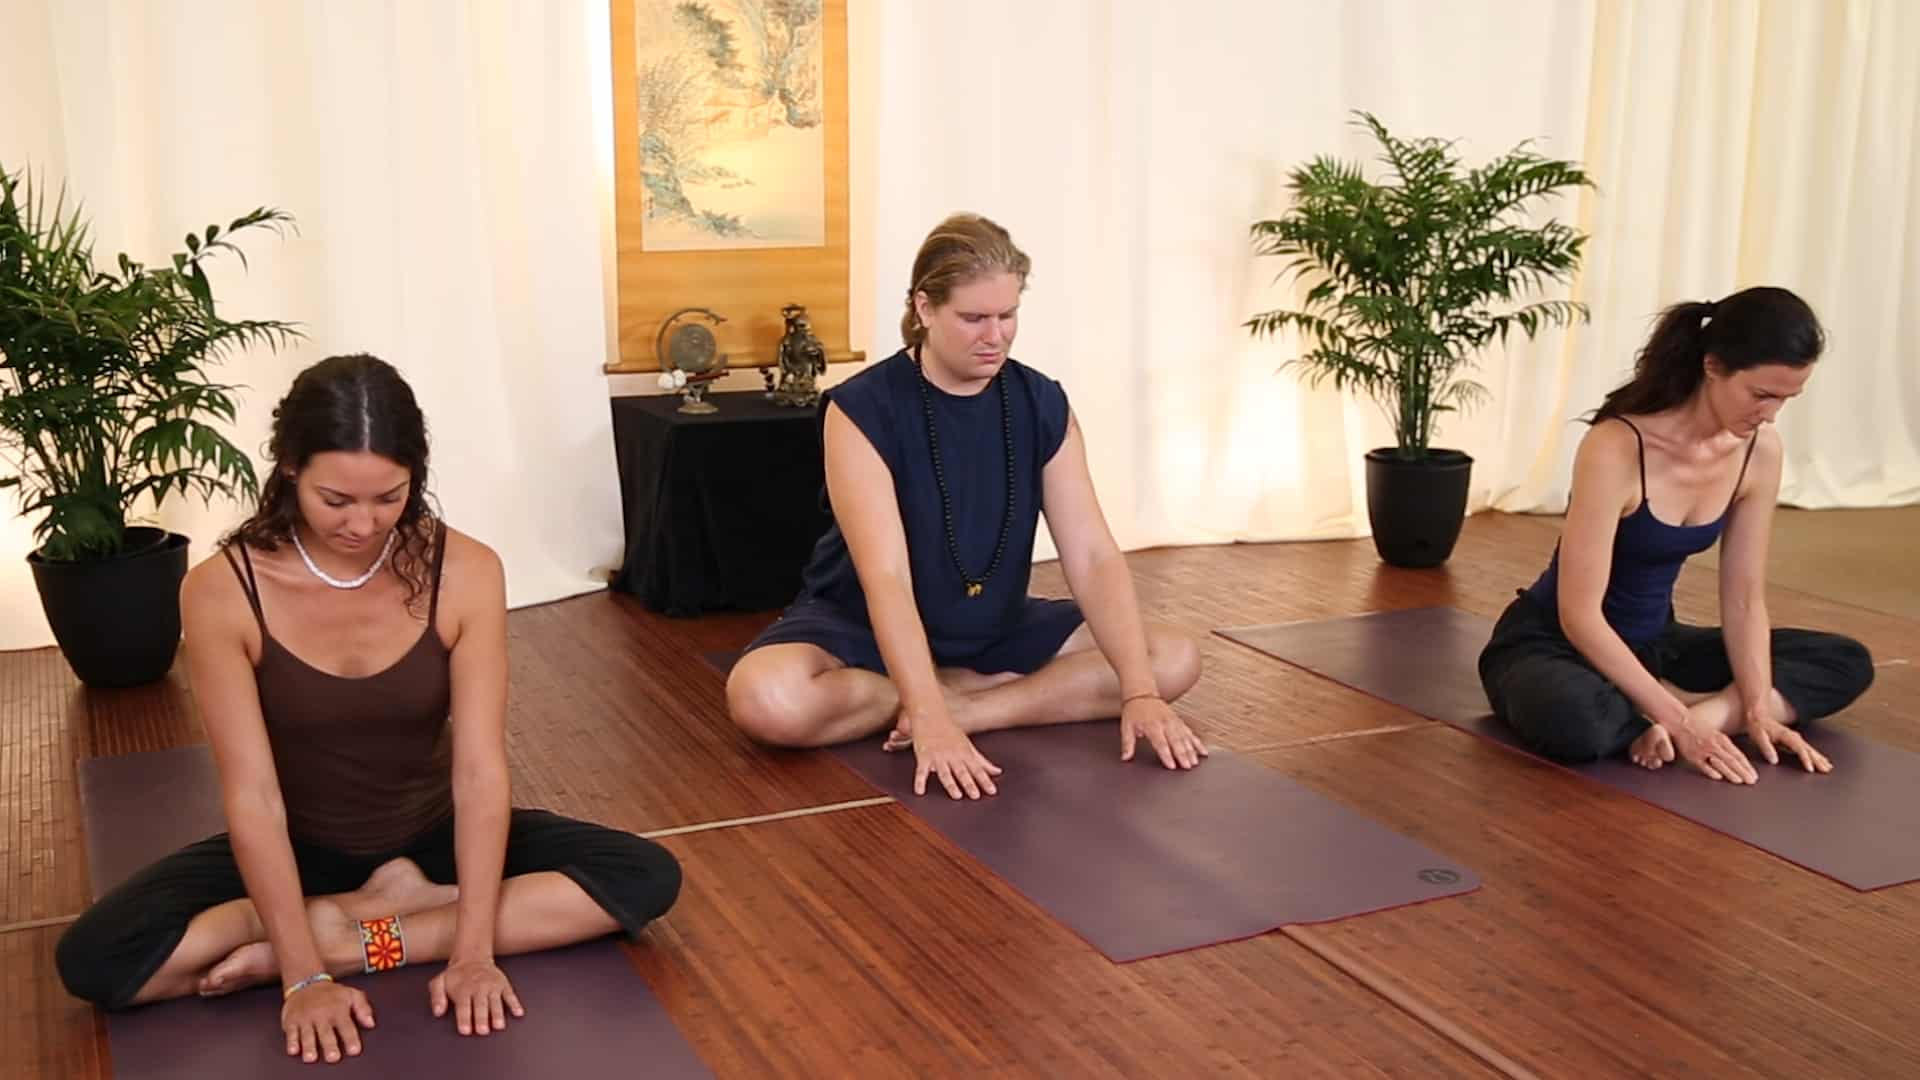 learn taoist yoga models demonstrate proper movements